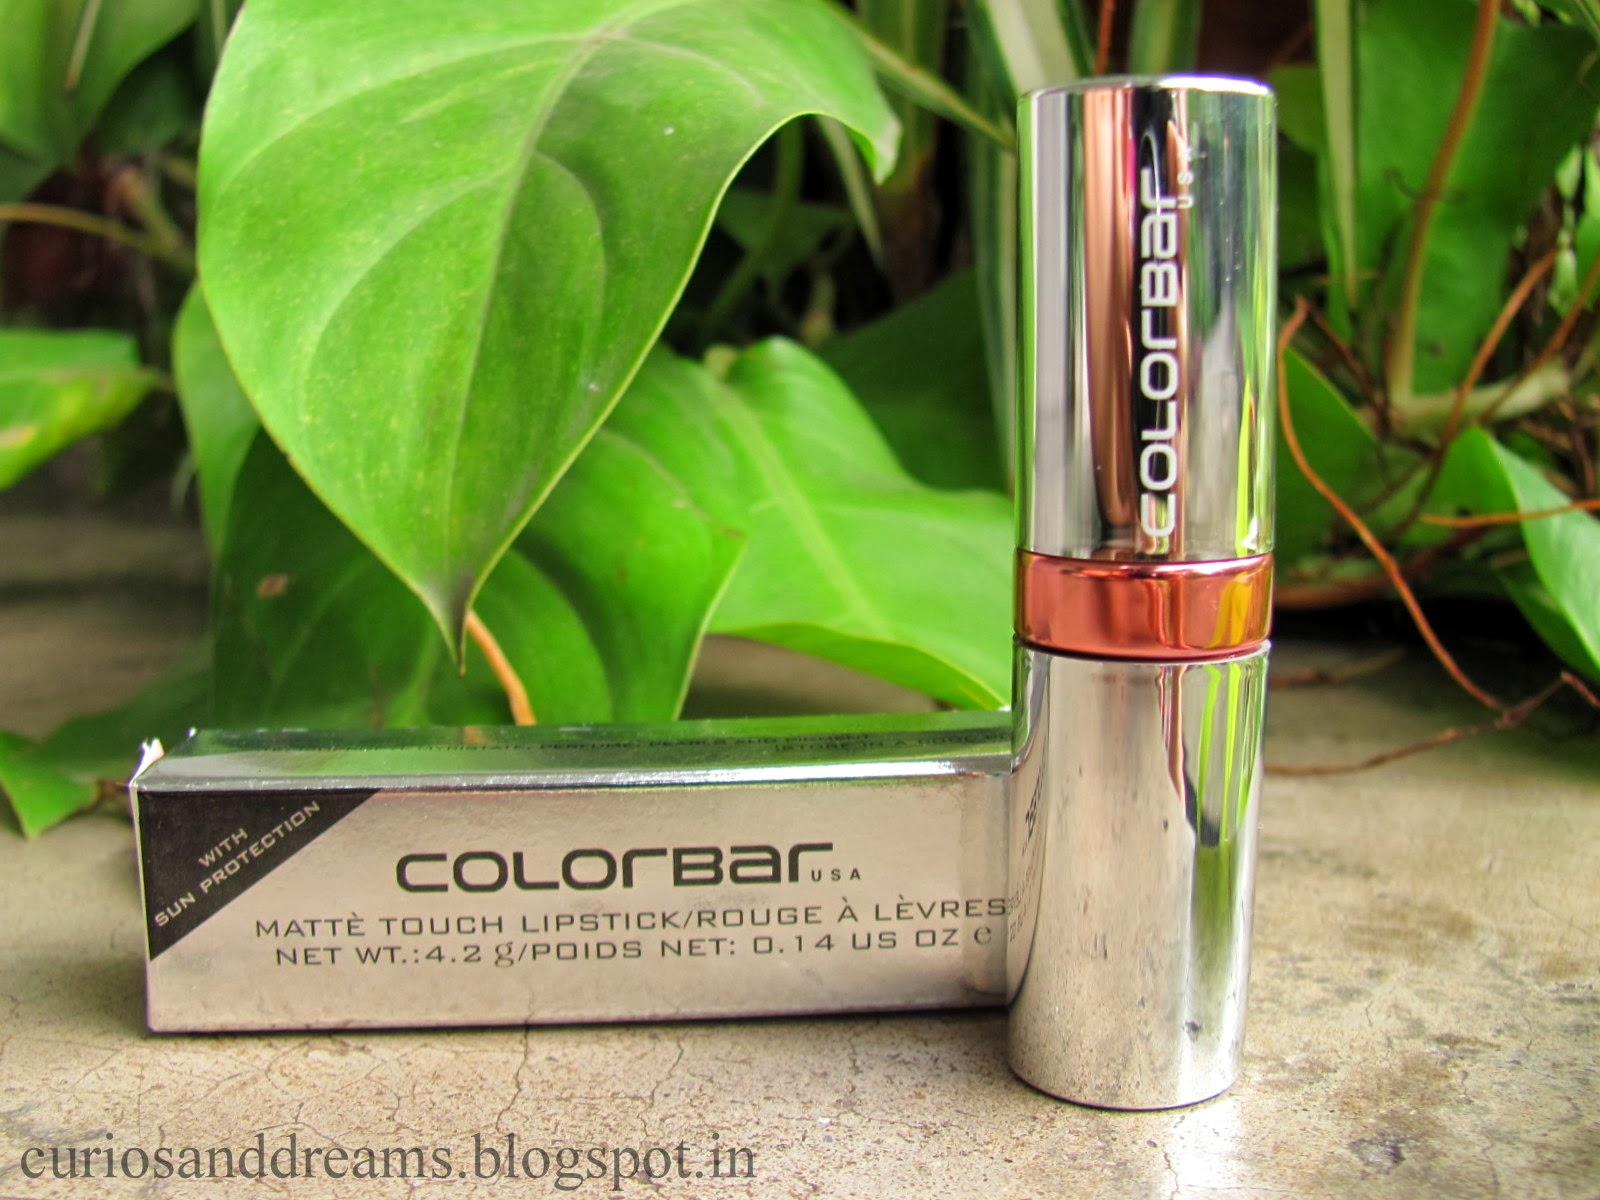 Colorbar Matte Touch Lipstick 034 Pink Hunt Review